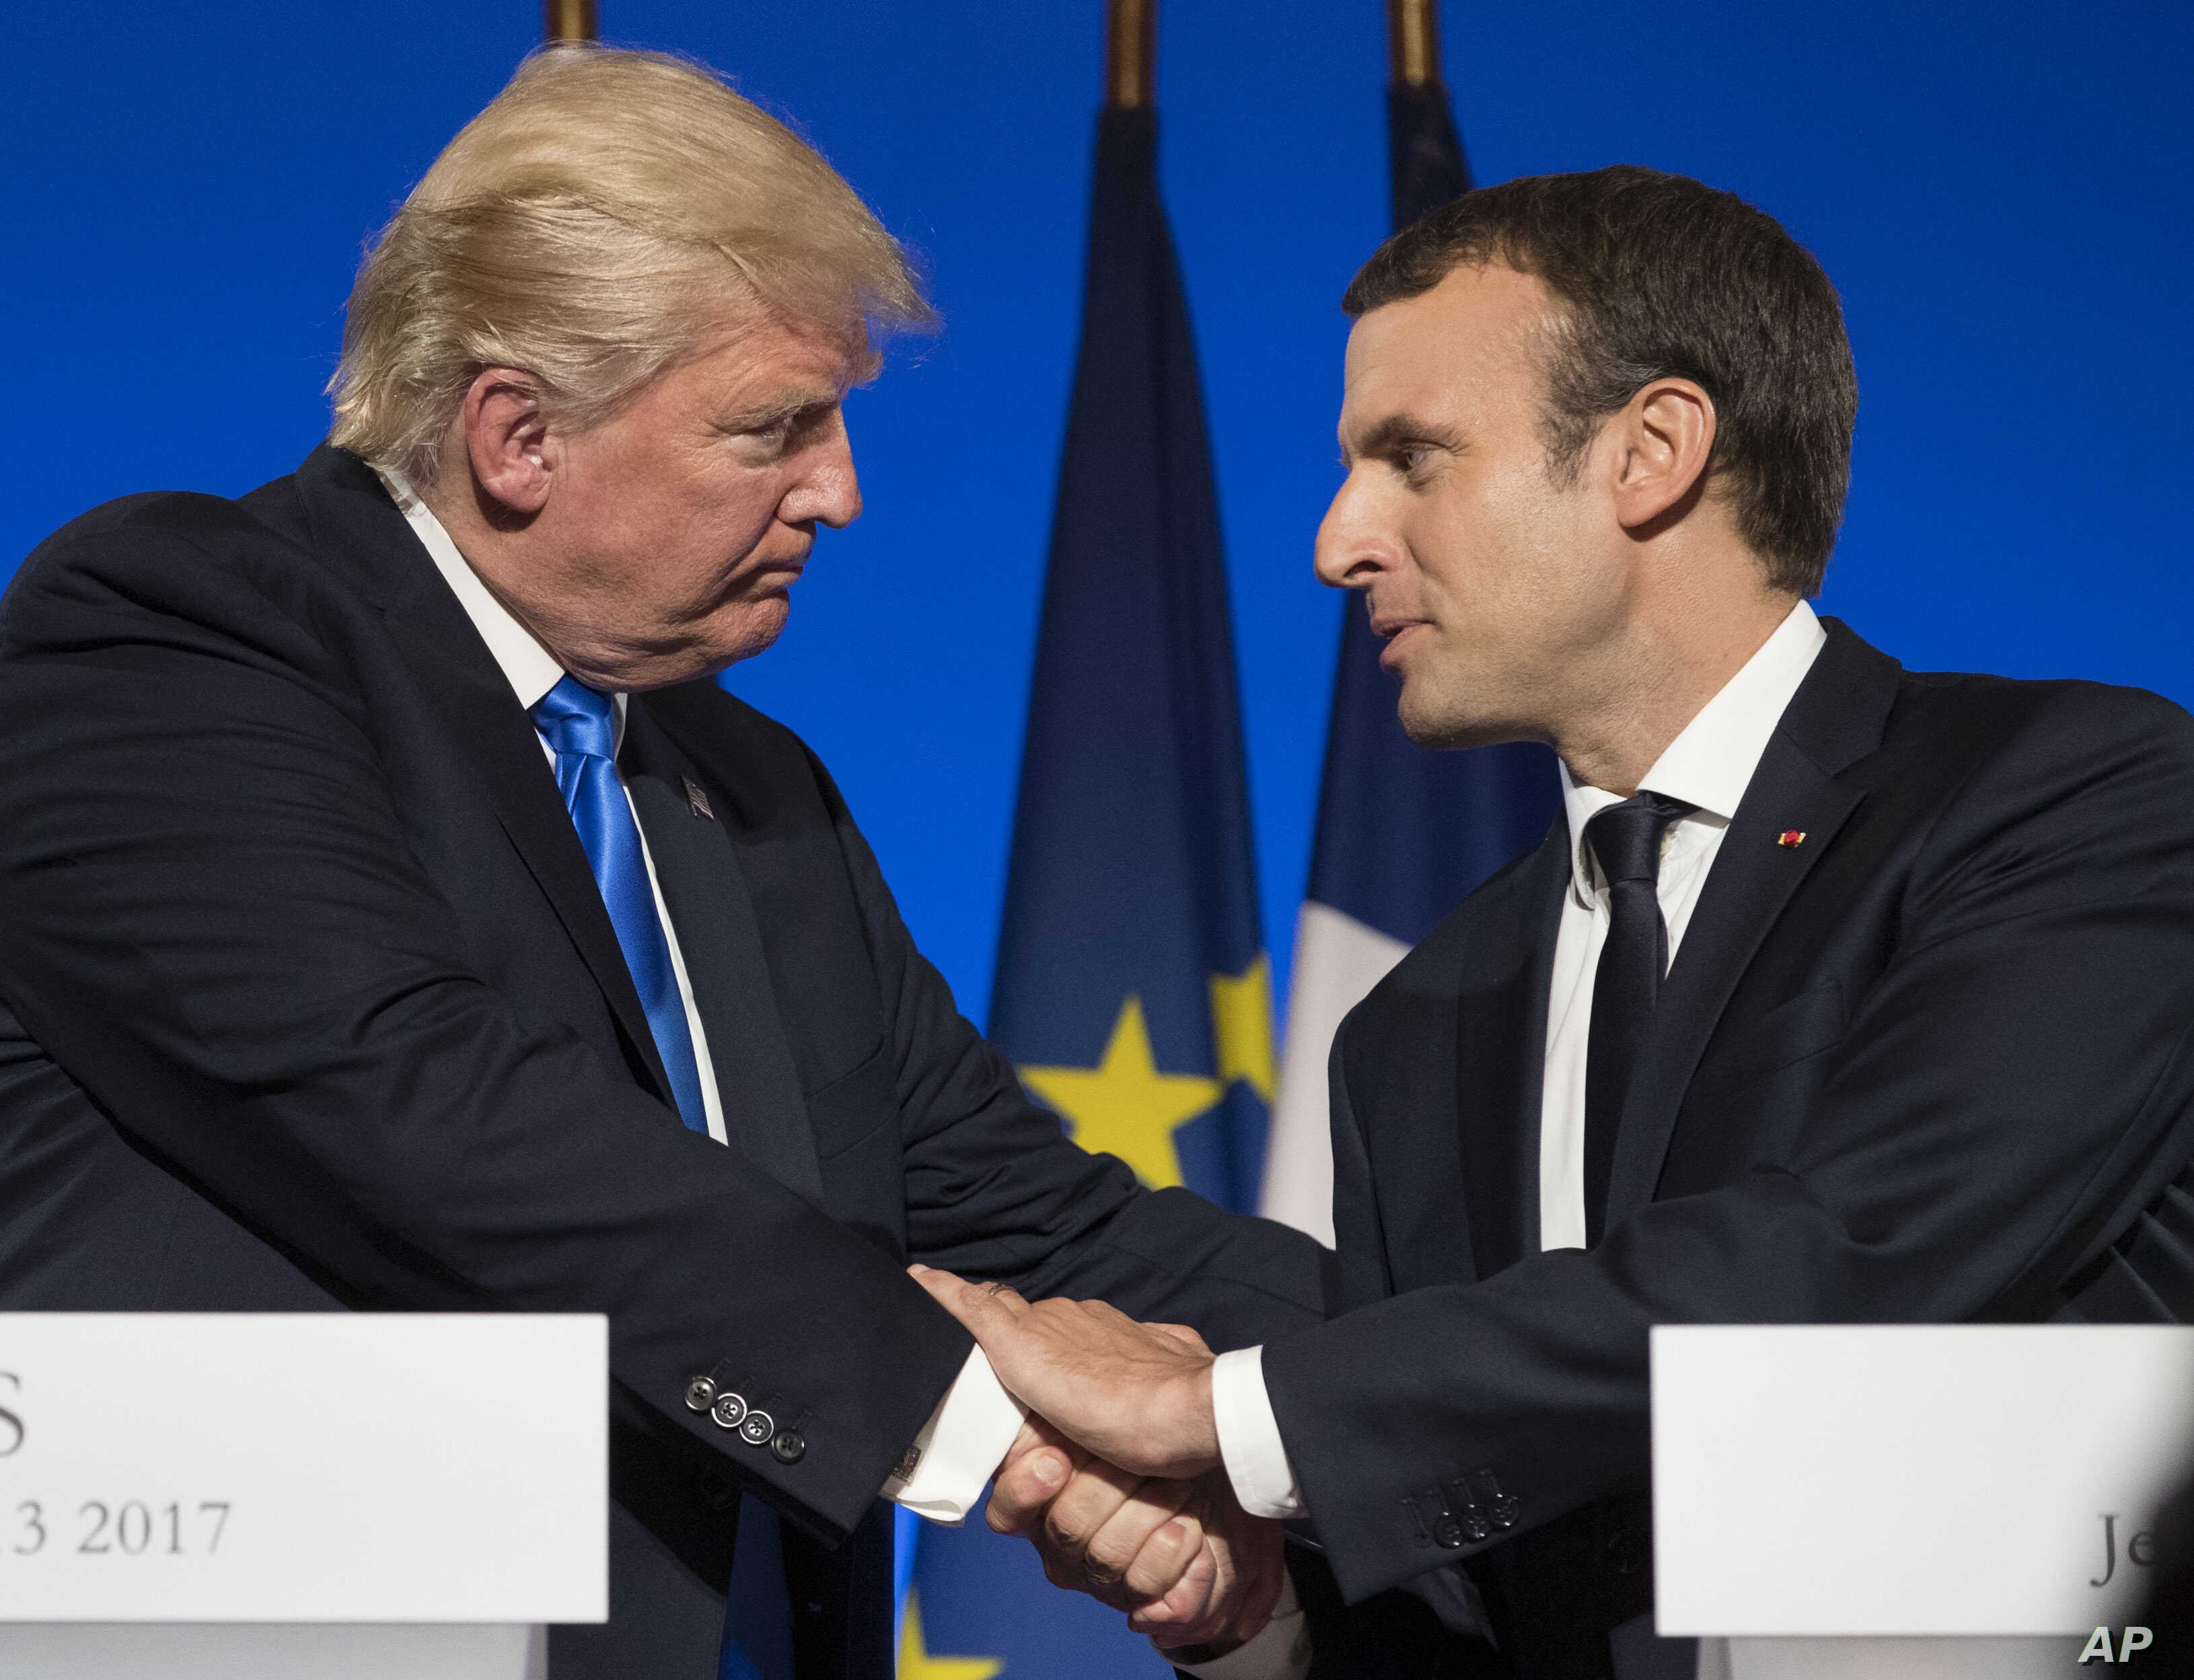 Trump Macron Work To Bridge Differences But No Promises On Climate Voice Of America English